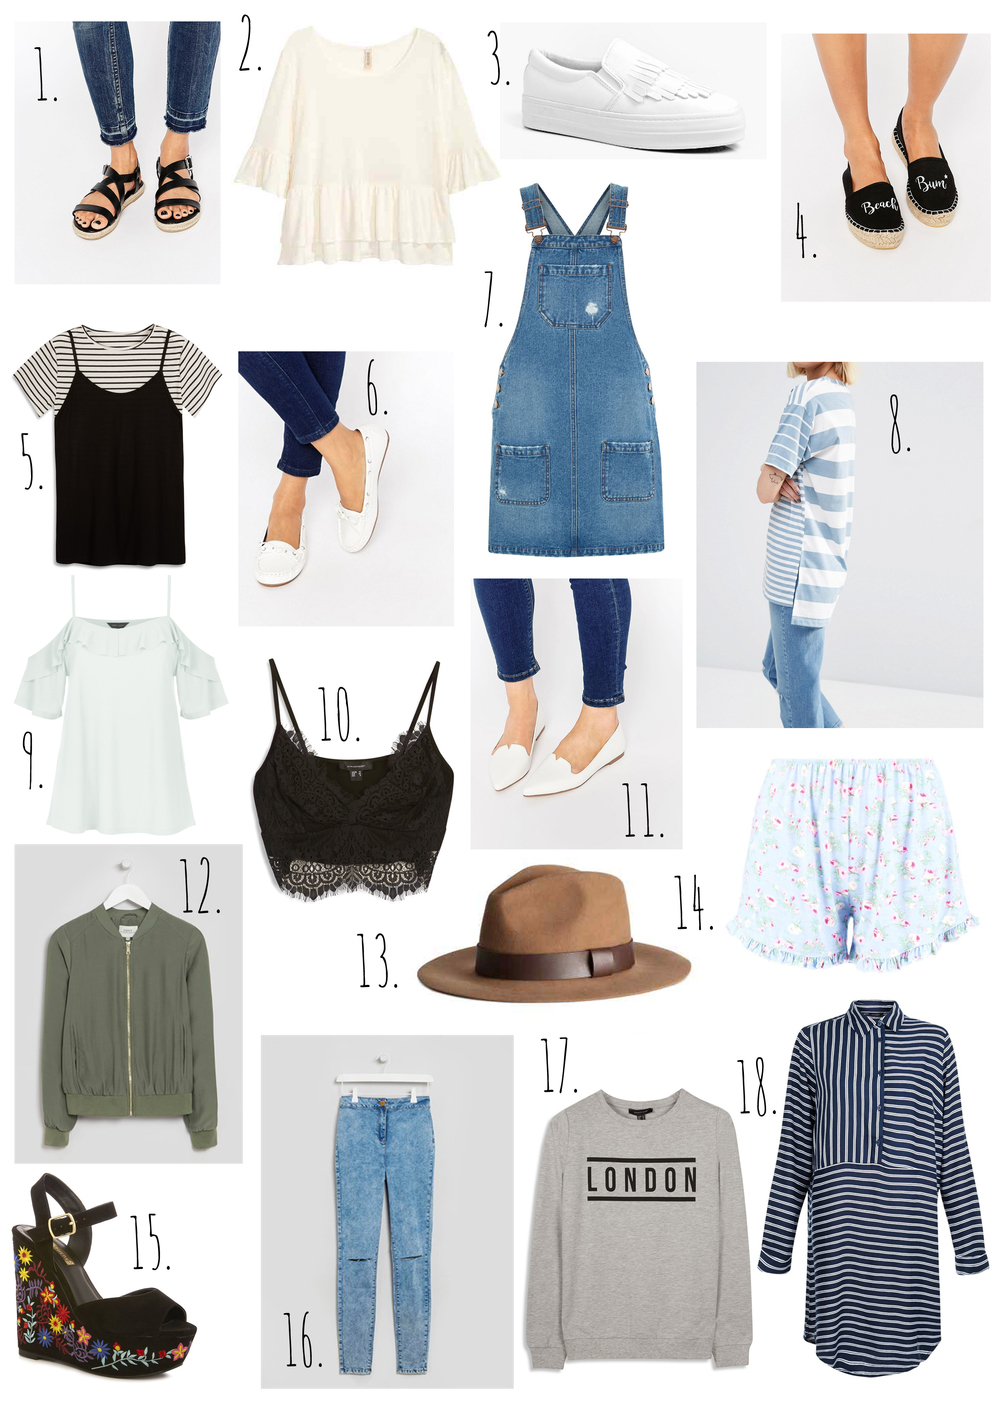 Summer Wardrobe High Street Wishlist.